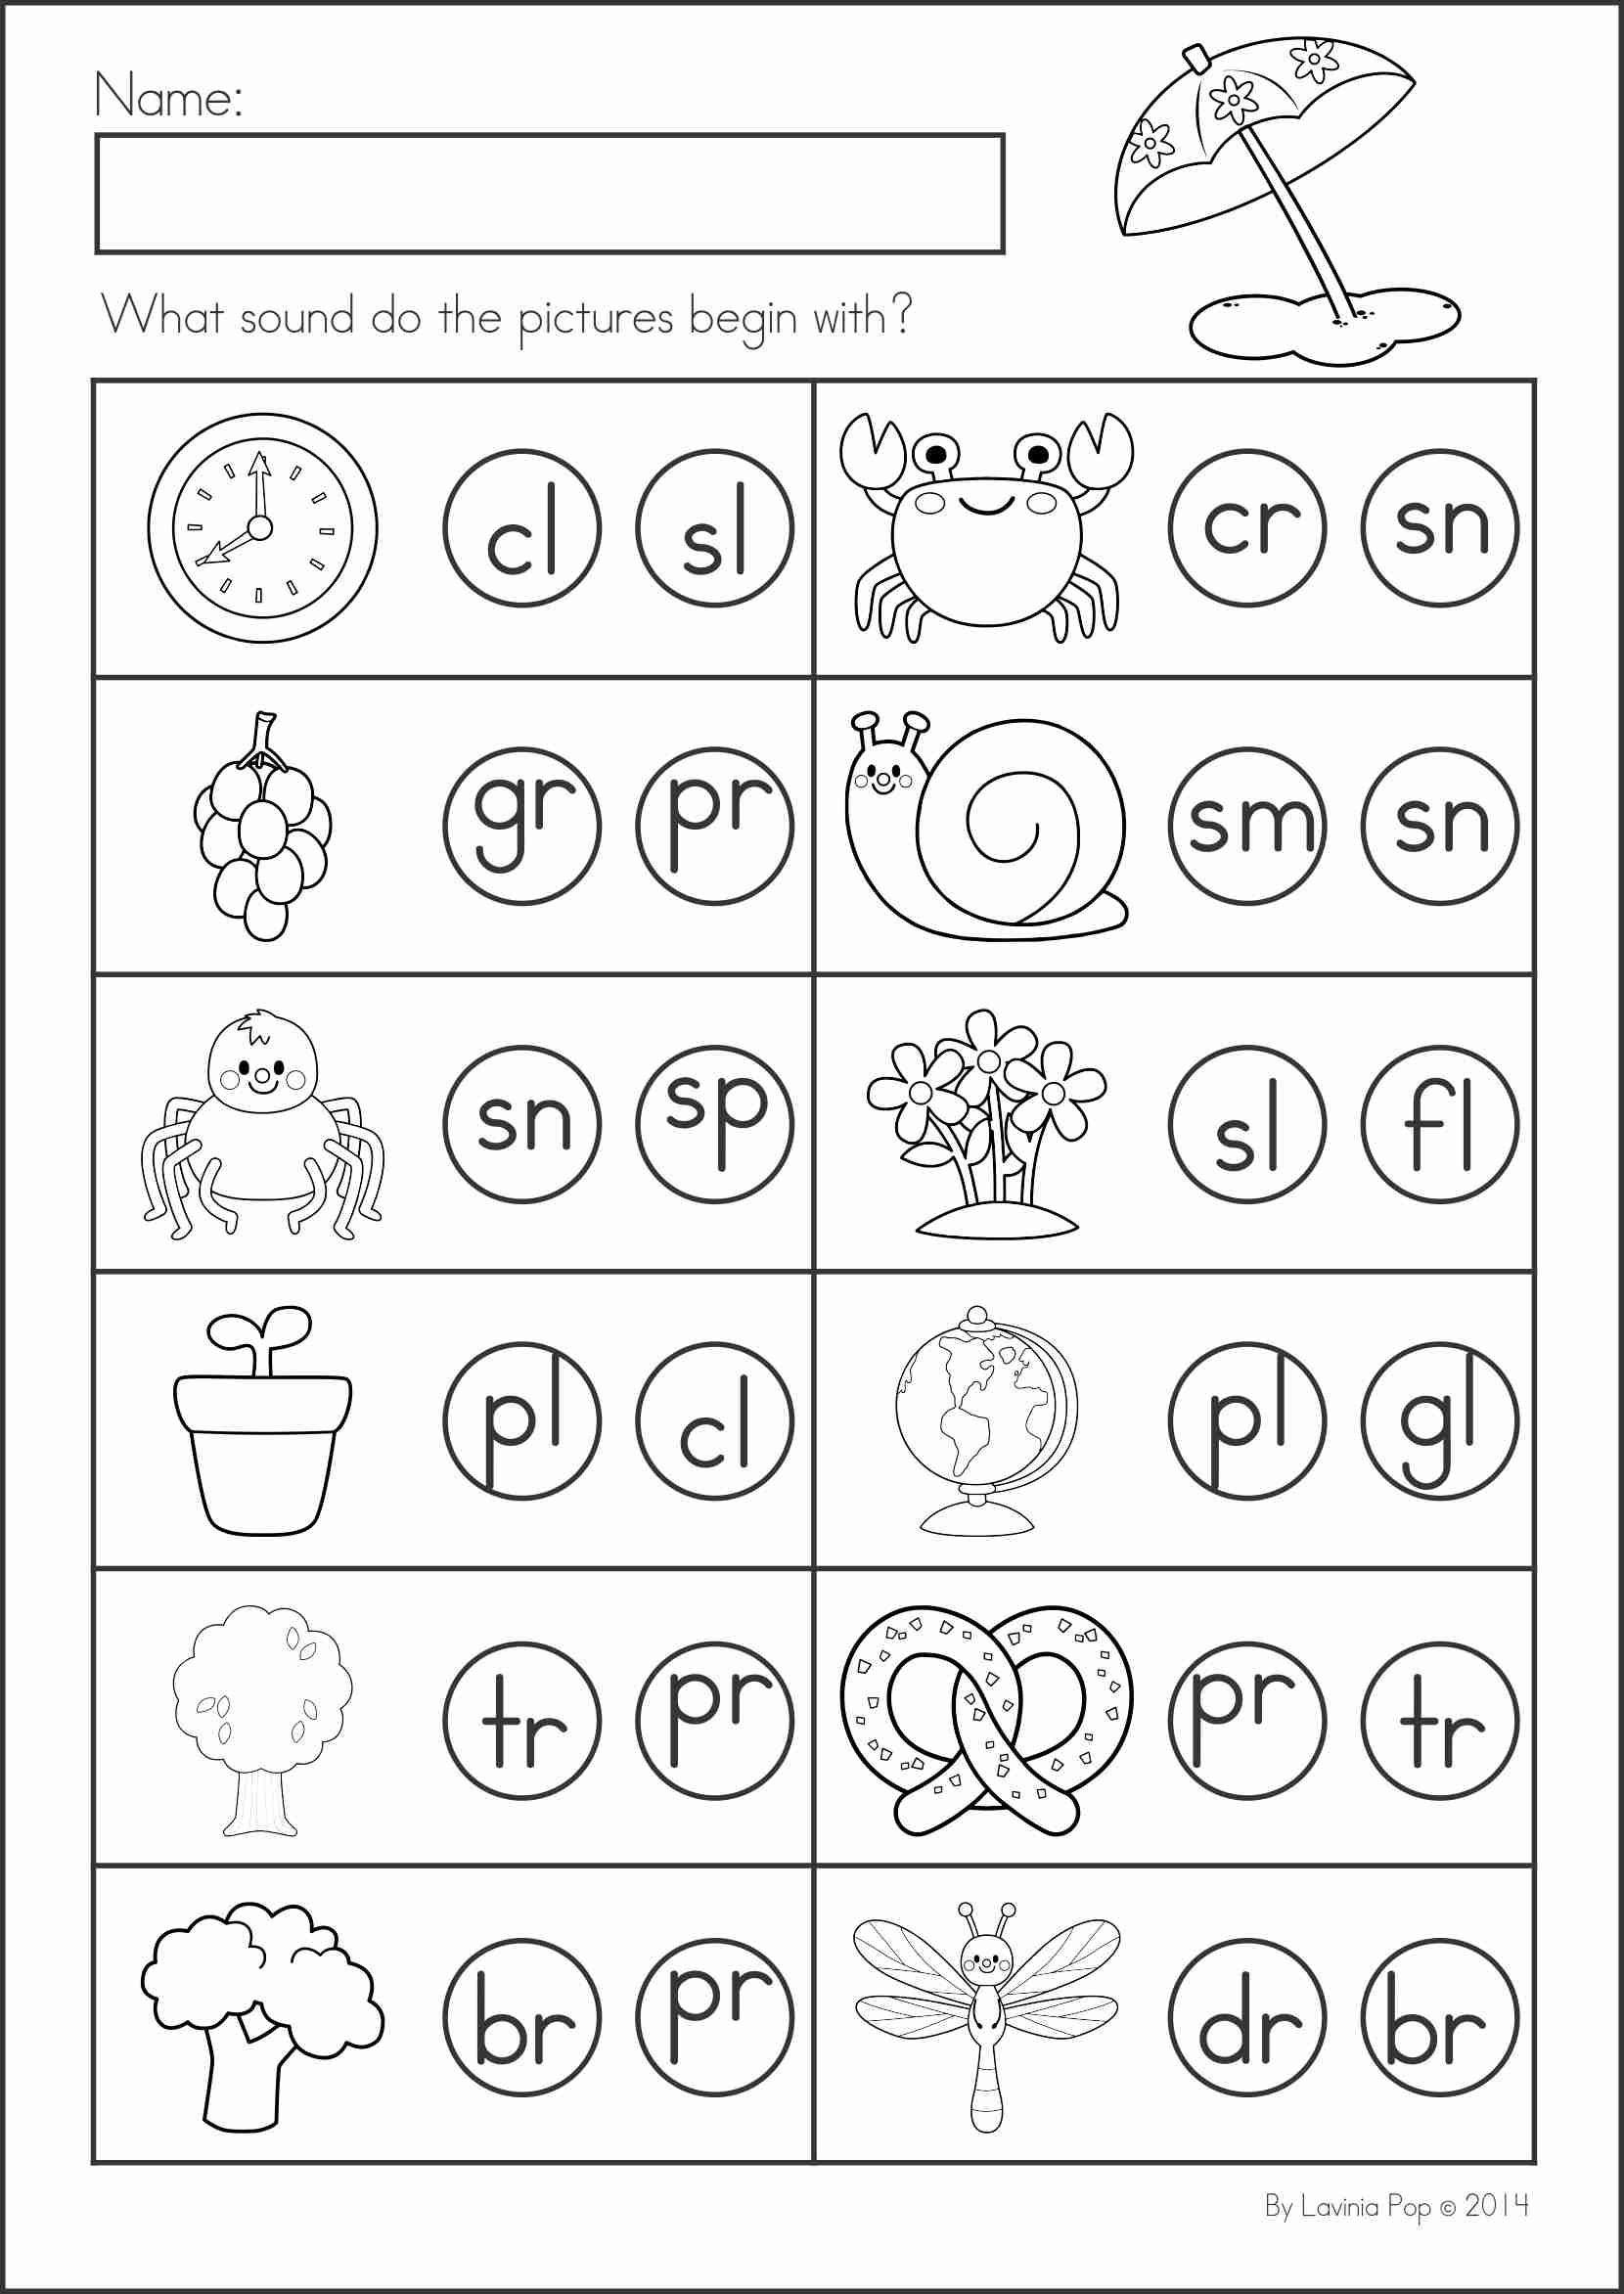 Kindergarten Summer Review Math Amp Literacy Worksheets Amp Activities 104 Pages A Page From The